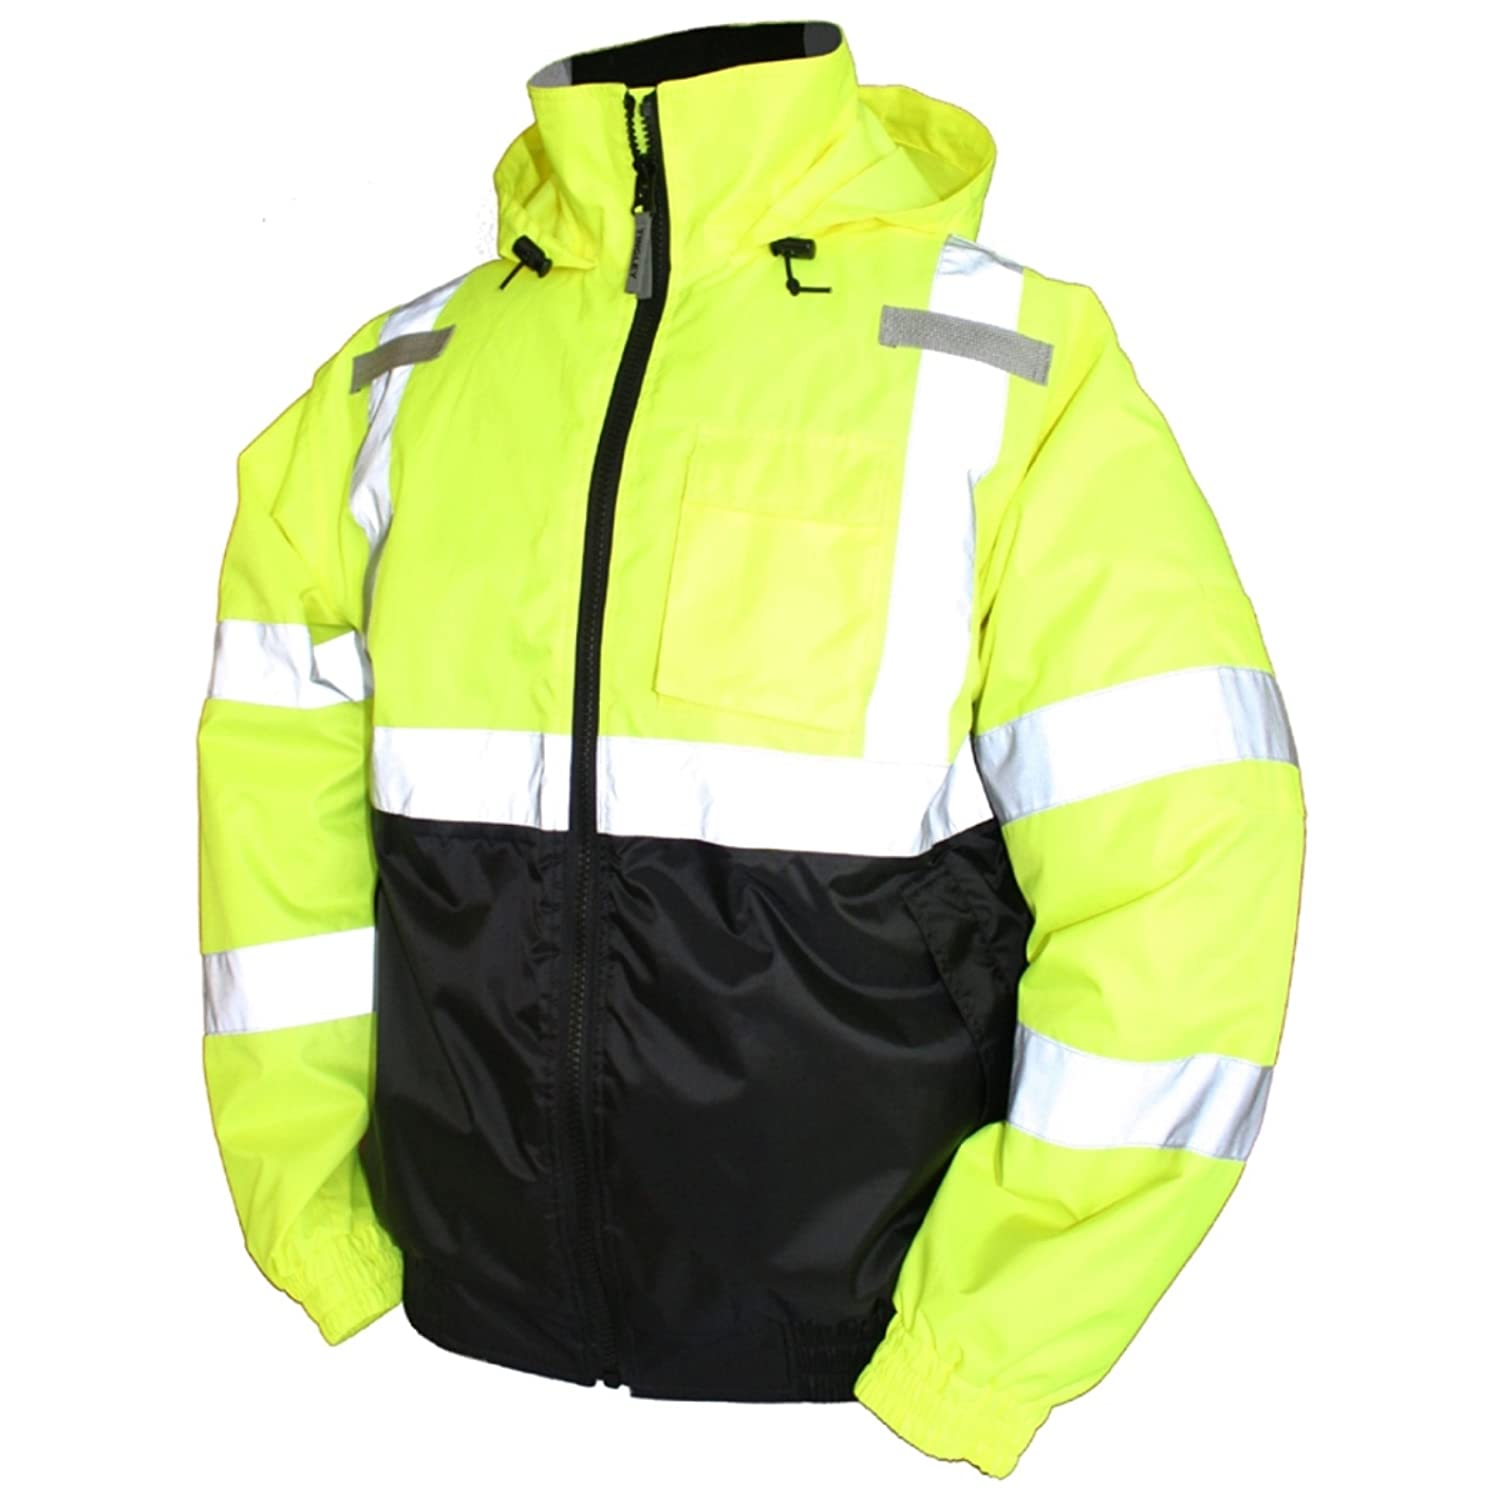 Amazon.com: Tingley Rubber J26112 Bomber II Jacket, Medium, Lime ...